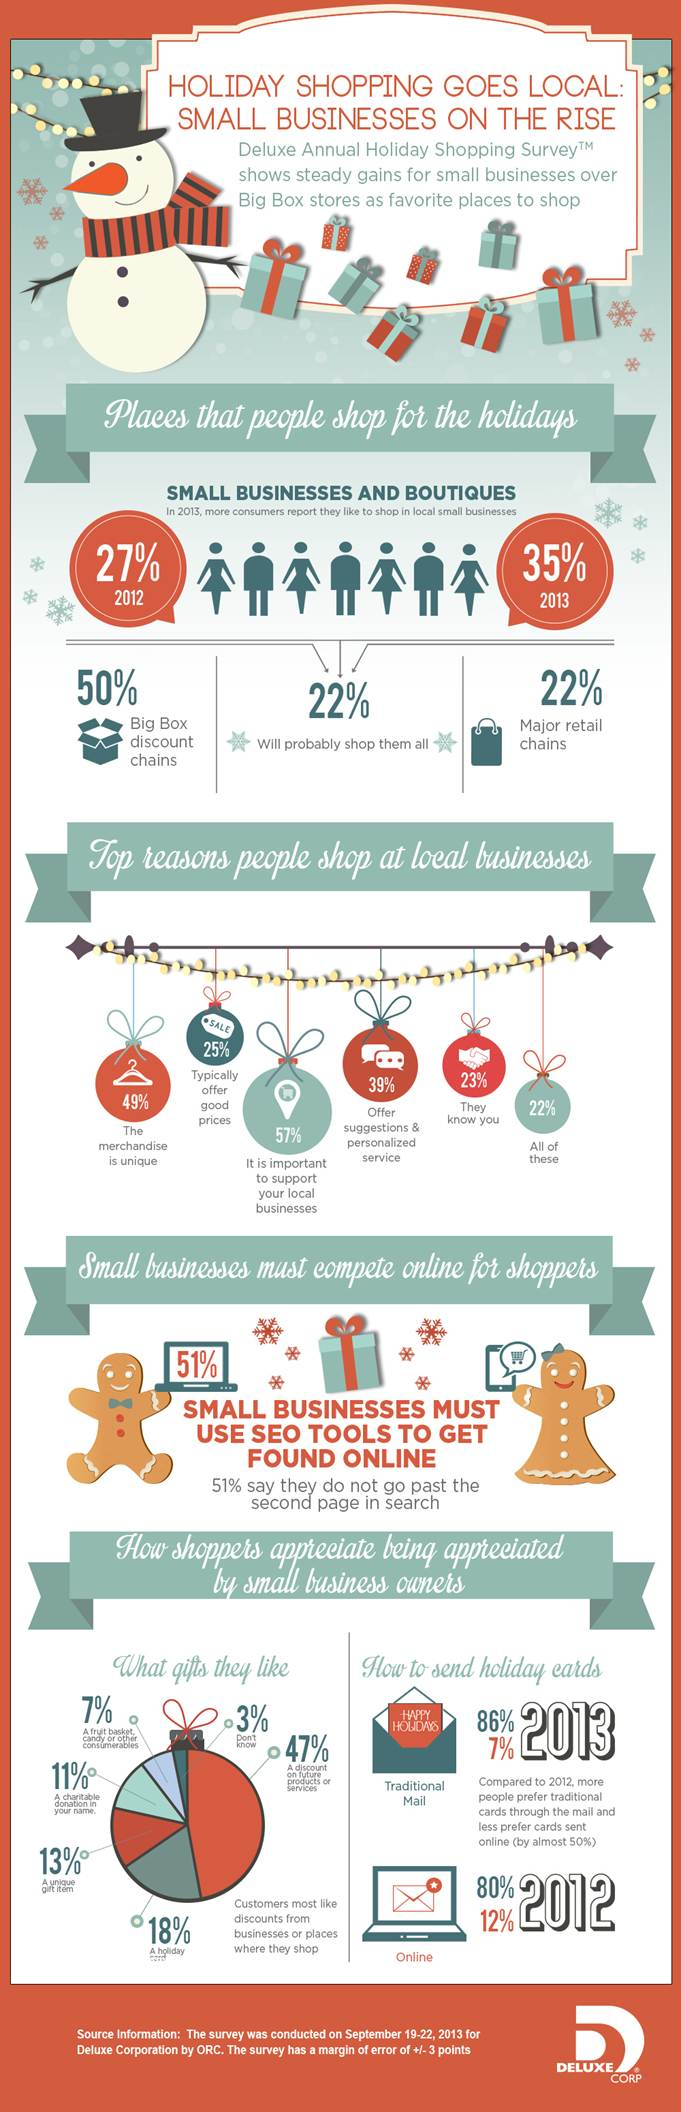 Online-Holiday-Shopping-Statistics-Small-Business